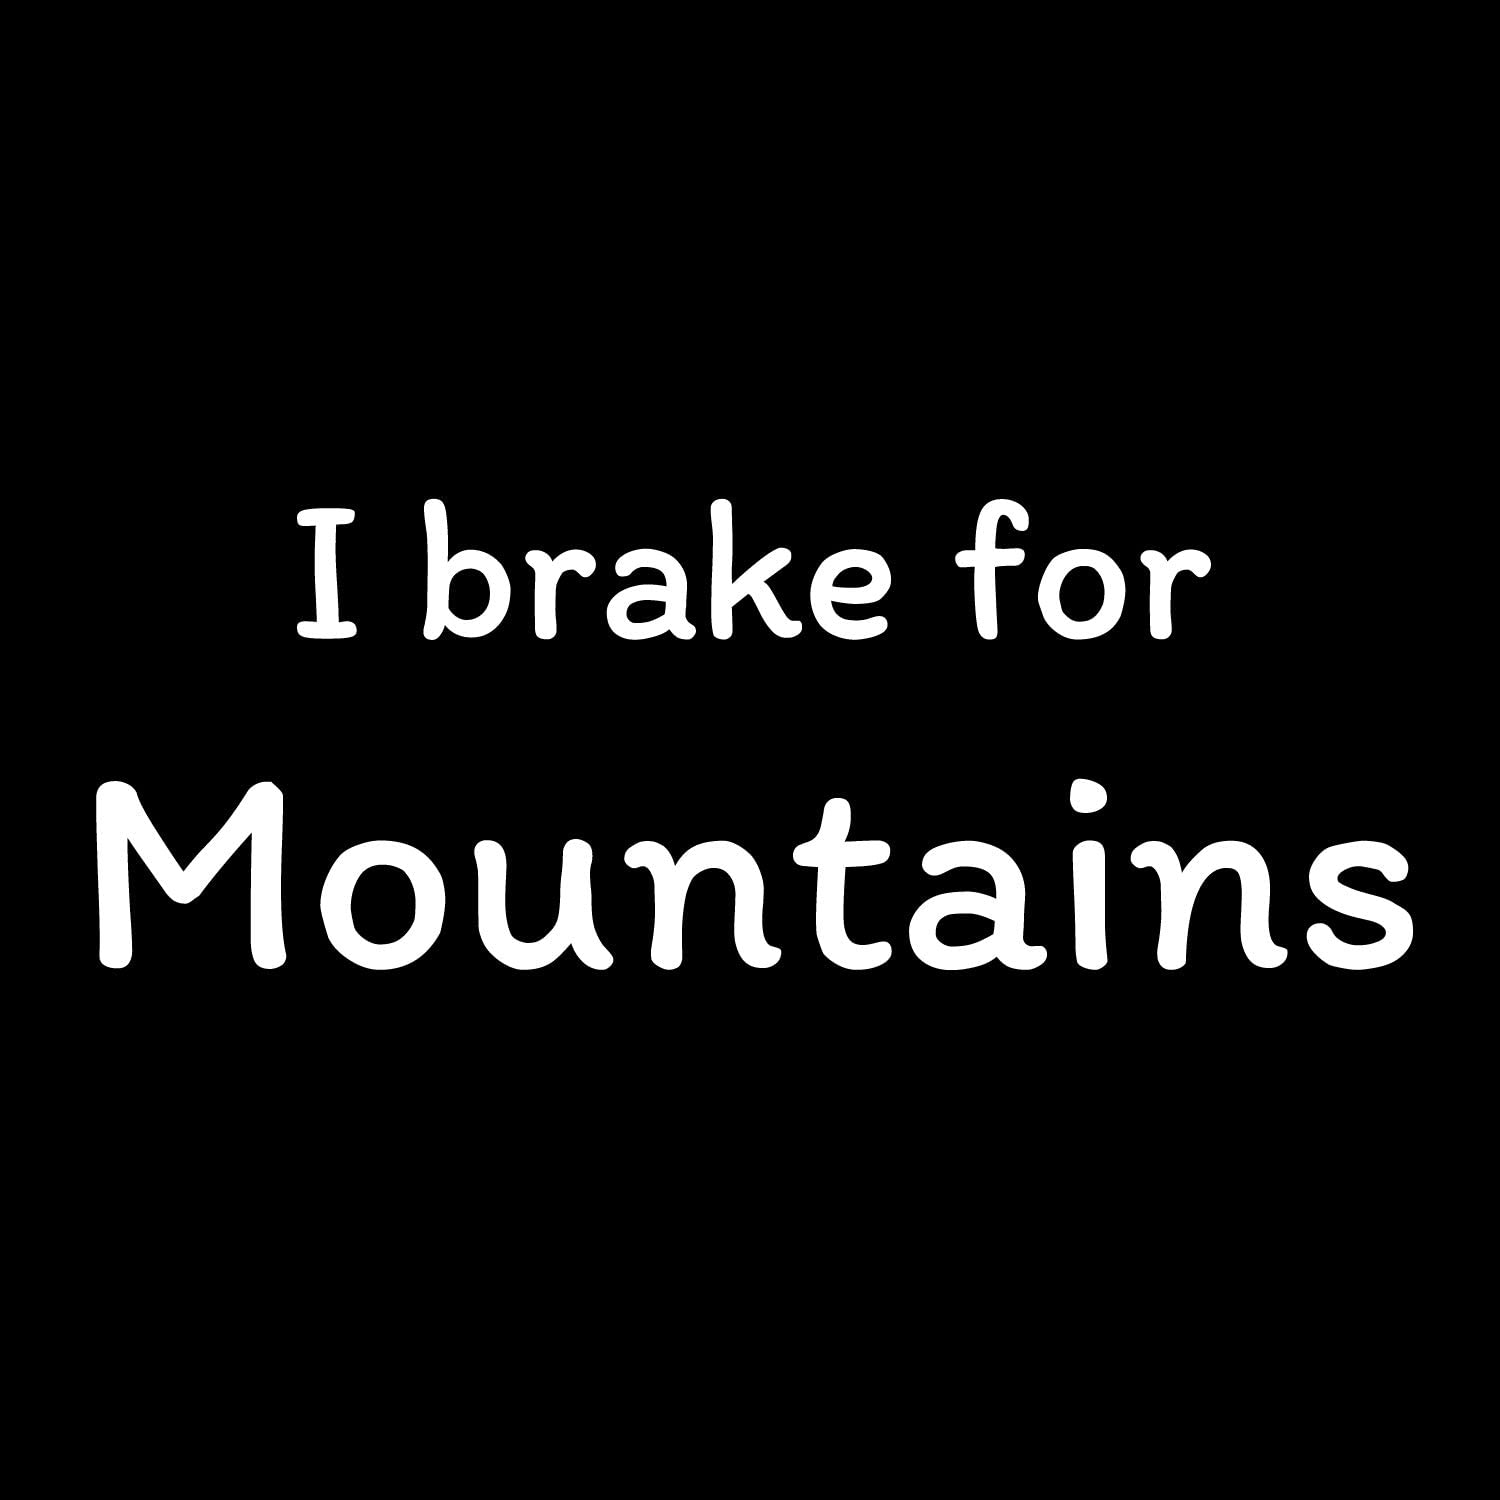 I Brake for Mountains Vinyl Decal Sticker One 7 Inch Decal Car Truck Van SUV Window Wall Cup Laptop MKS0730